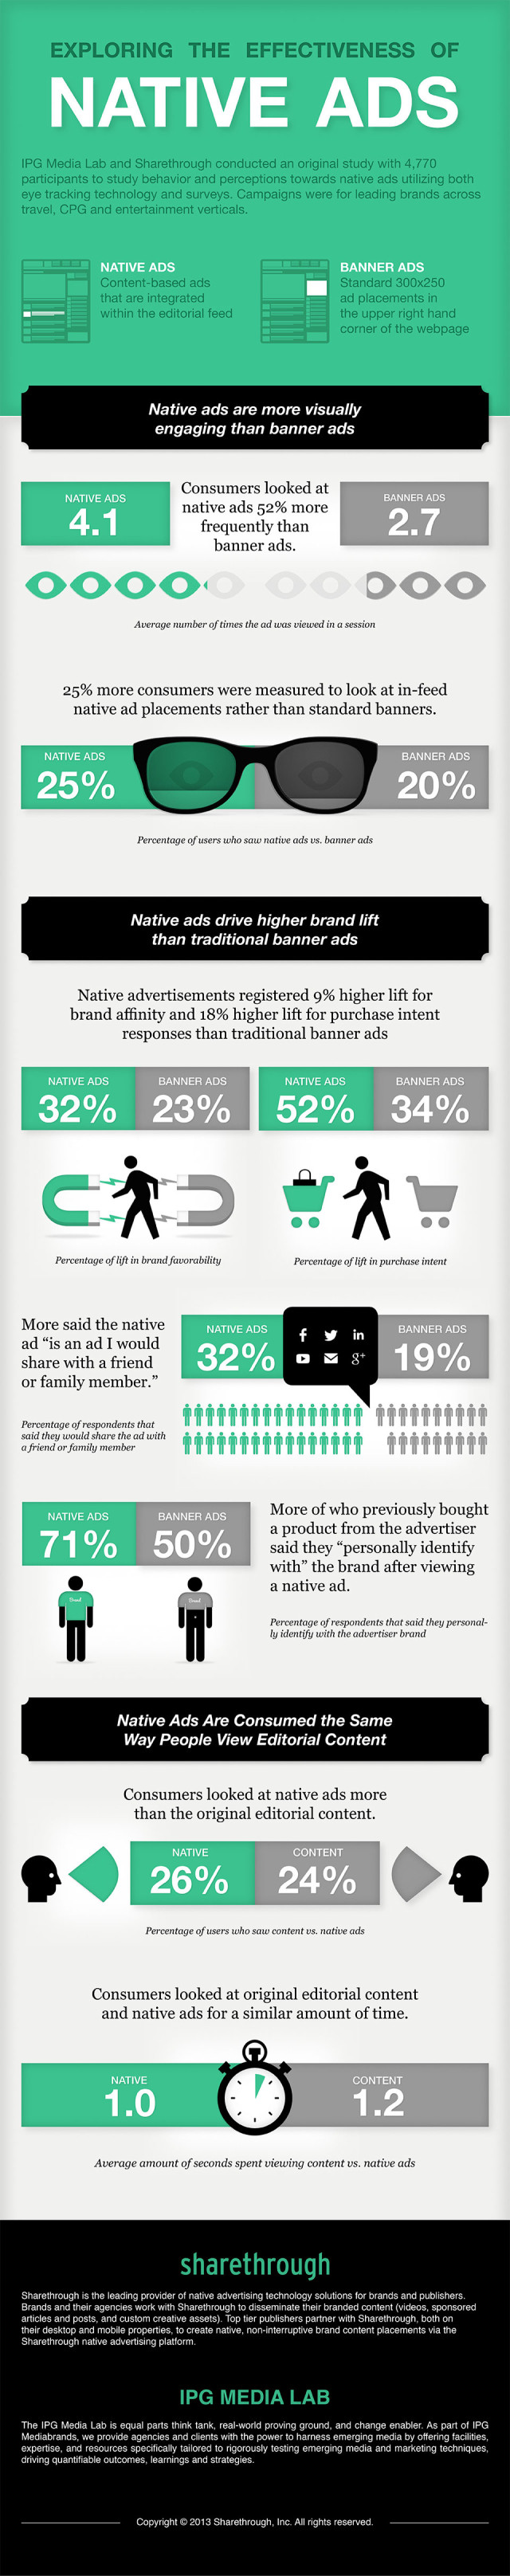 sharethrough-IPG-Infographic-web2